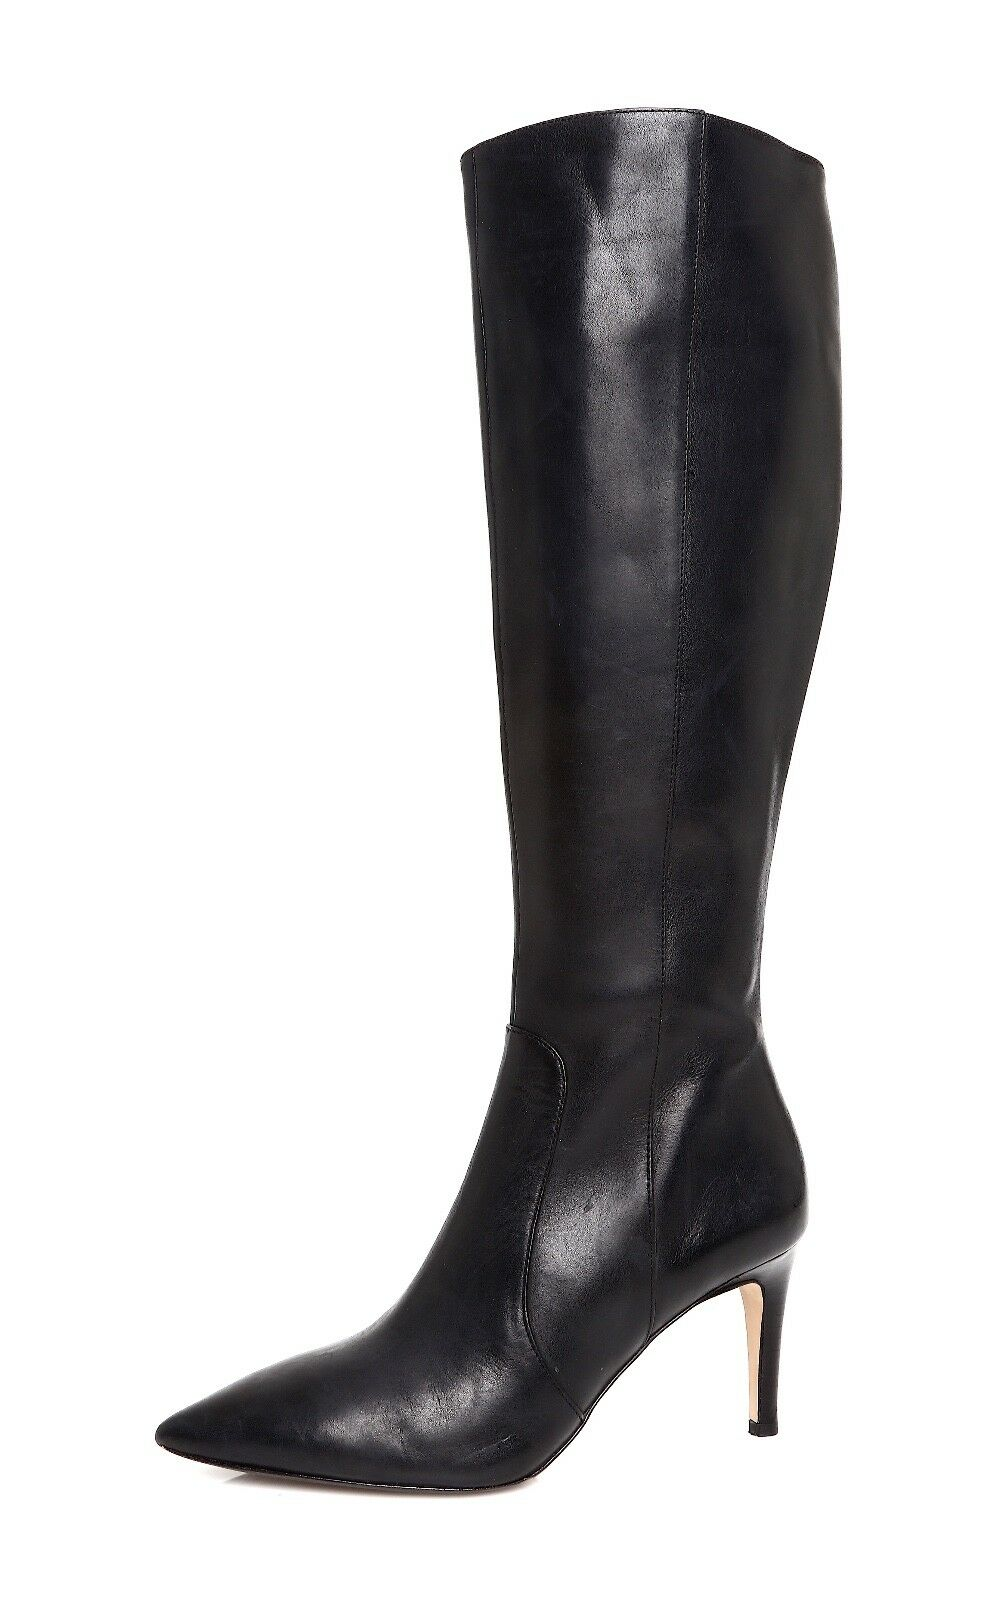 Via Spiga Dacia Pointed Toe Women's Black Leather Boots Sz 5 M 4502